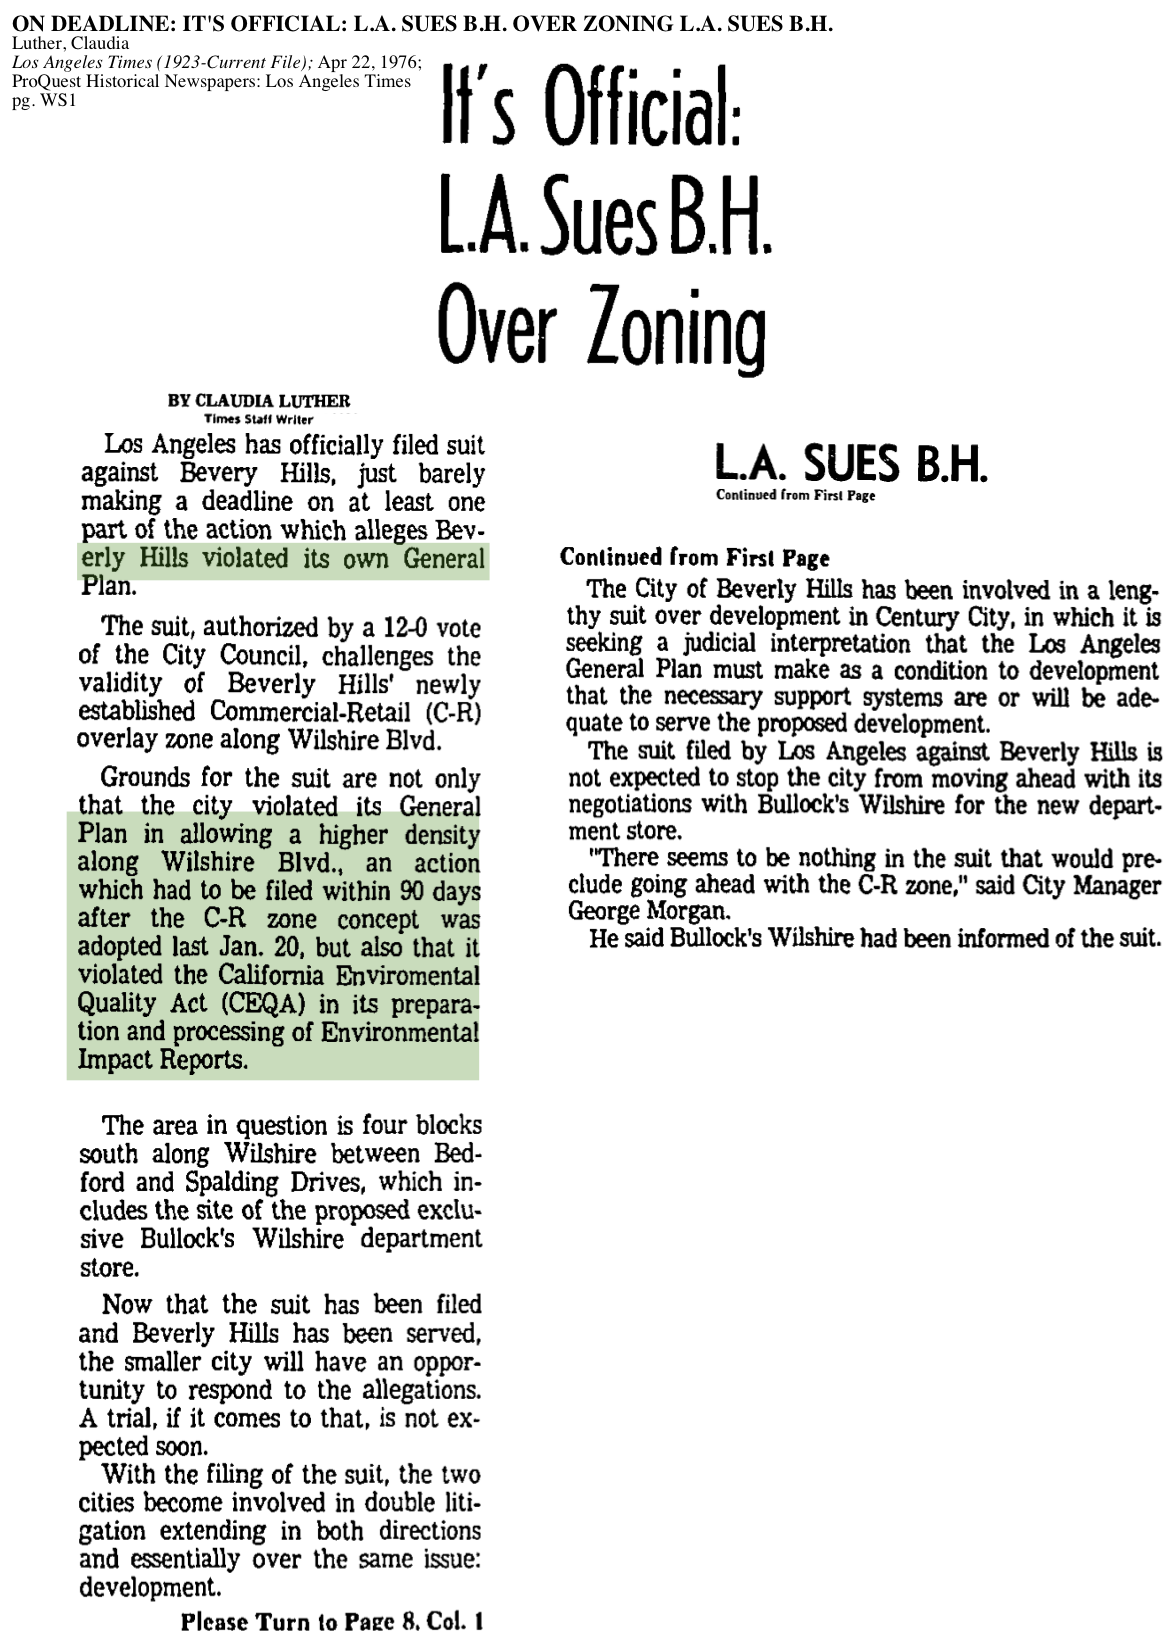 1976-L.A. Sues B.H. Over Zoning